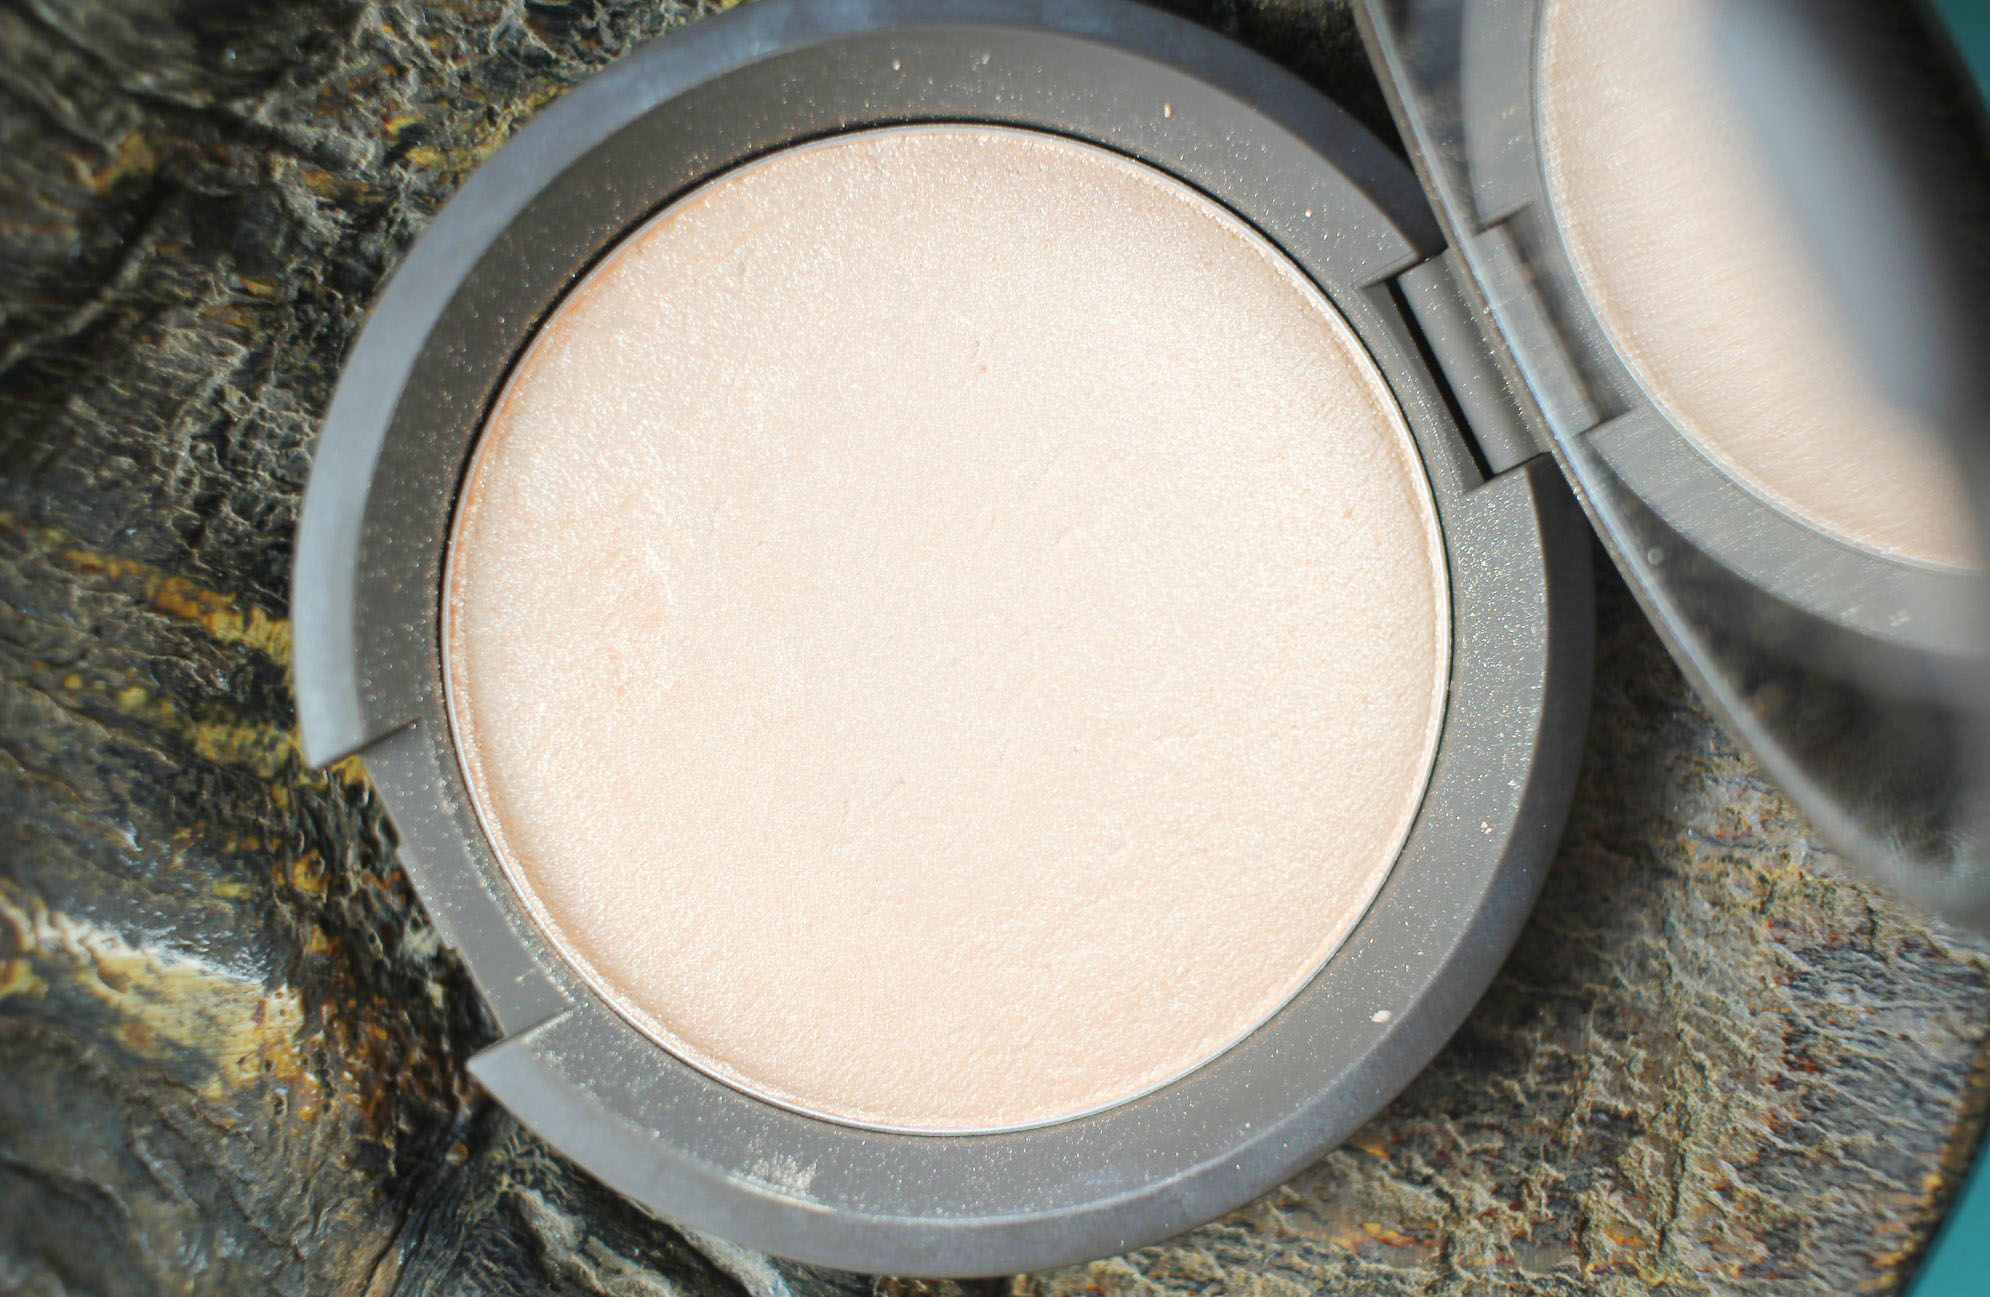 Becca x Jaclyn Hill Champagne Pop Shimmering Skin Perfector Pressed